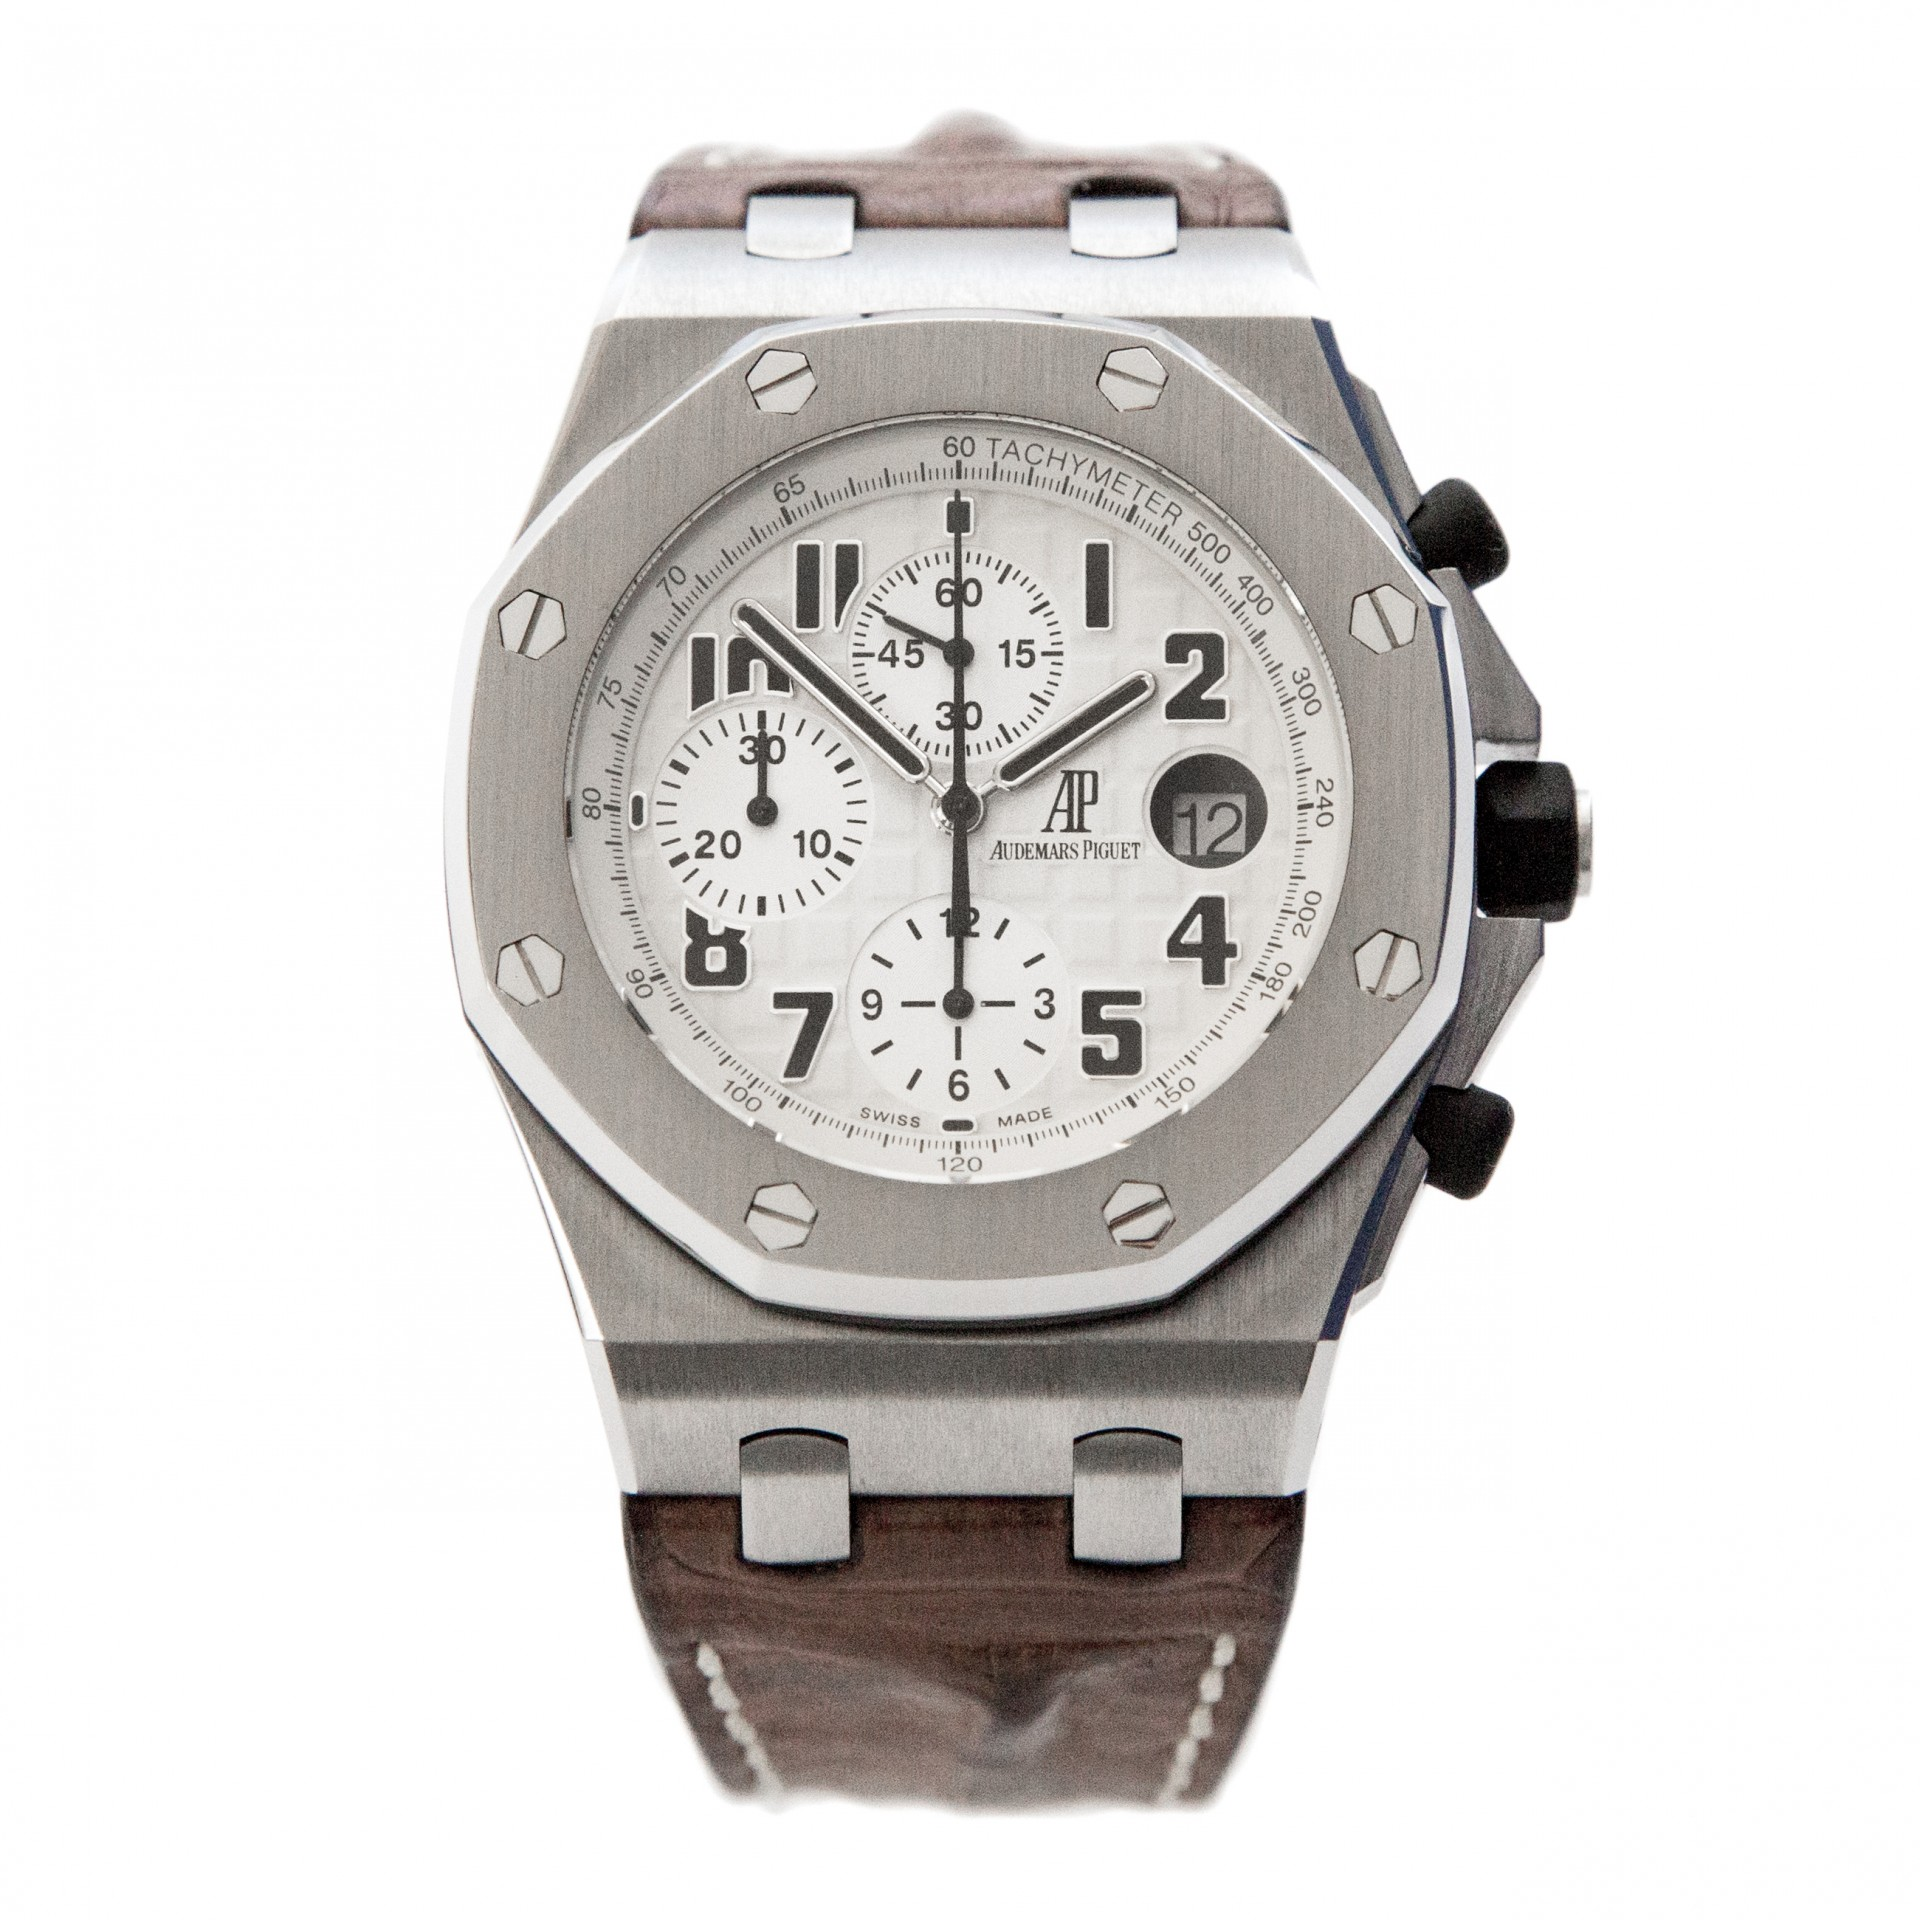 Audemars Piguet Royal Oak Offshore Chronograph Ref 26170st Oo D091cr 01 Safari H Serial Full Set